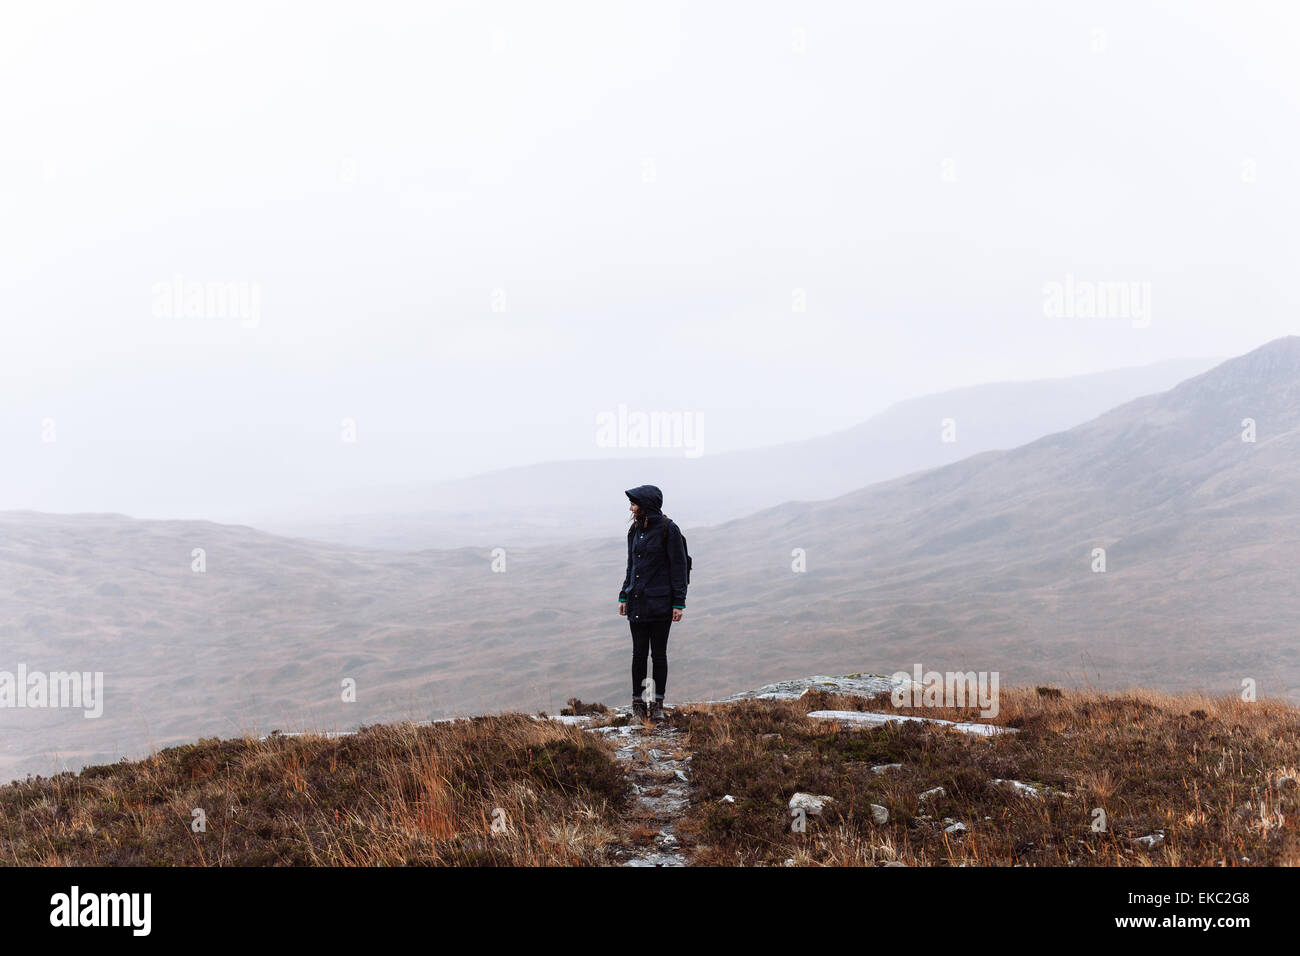 Woman hiking, Glencoe, Scottish Highlands, Scotland - Stock Image